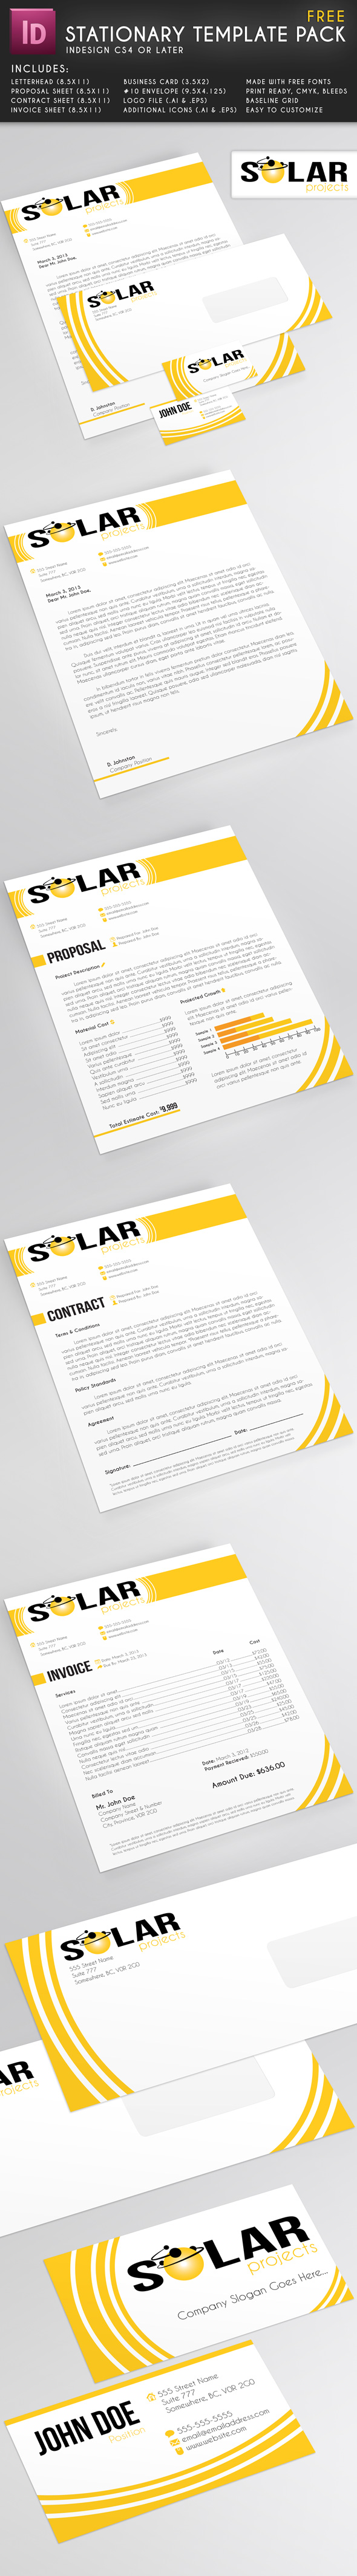 Stationary template pack indesign cs4cs5 free download edit stationary template pack indesign cs4cs5 free download edit freely yelopaper Choice Image